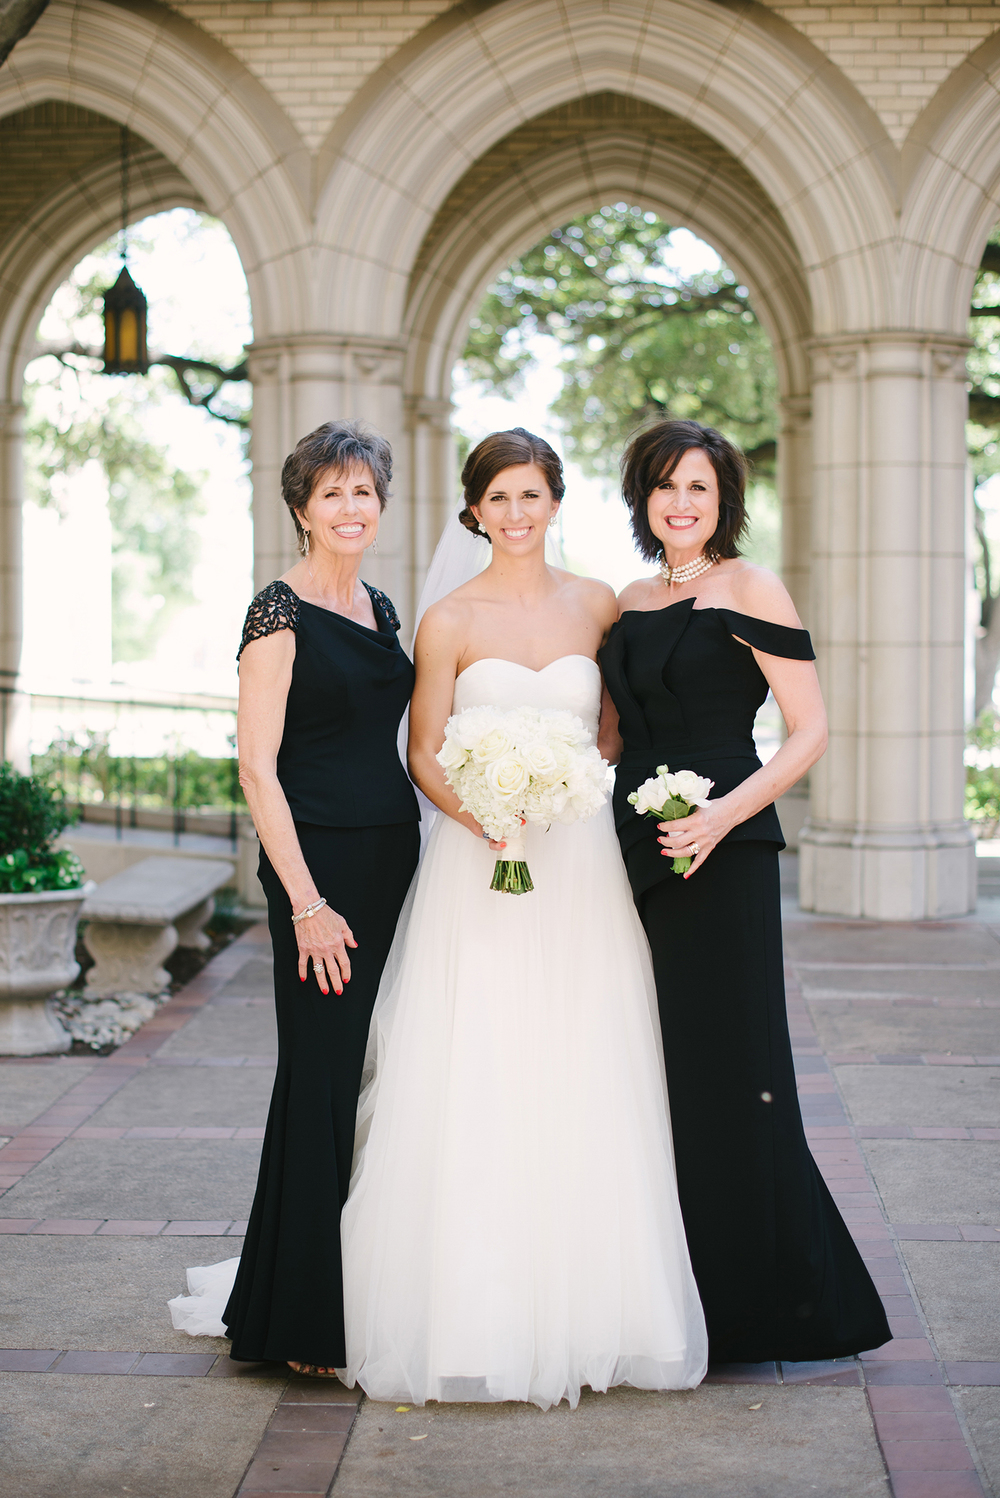 Emily-Ann-Hughes-Photography-Texas-Wedding-Photography-Vickory-at-809-18.jpg